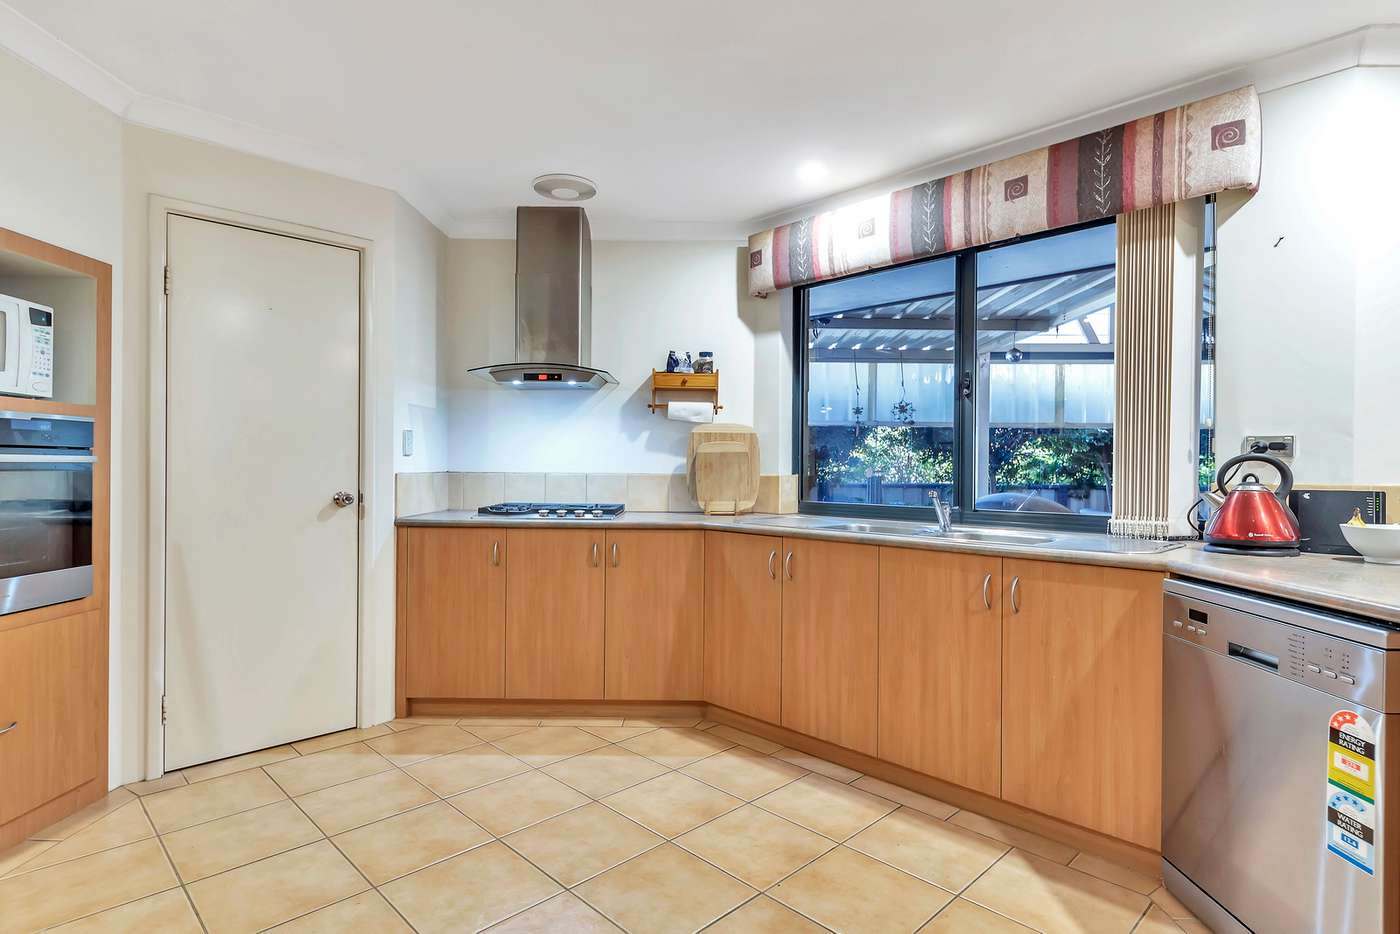 Sixth view of Homely house listing, 22 Portrush Parade, Meadow Springs WA 6210